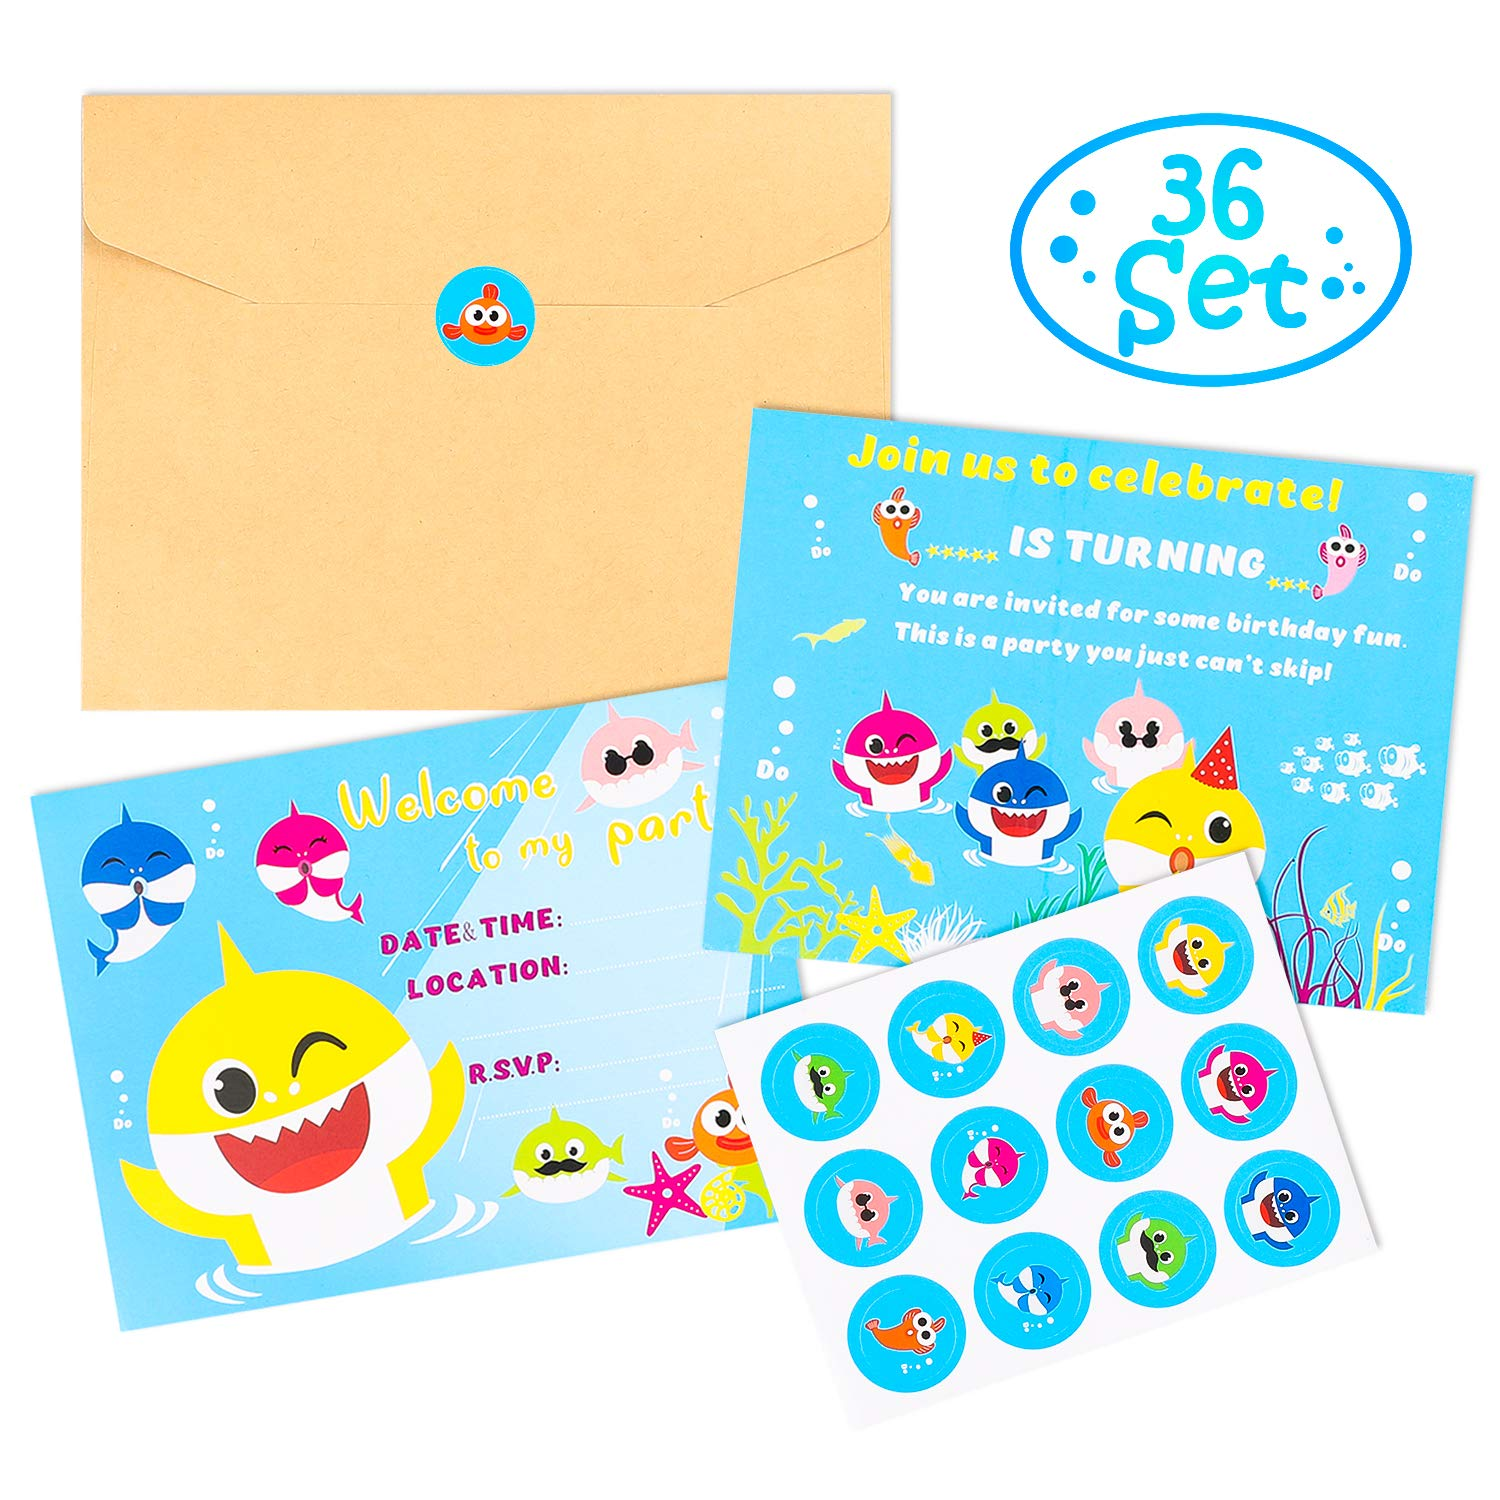 MALLMALL6 36Pcs Little Shark Invitation Cards Set Little Shark Greeting Card Shark Themed Birthday Party Supplies Baby Shower Invitation Invites for Kids with Envelopes Little Shark Sticker